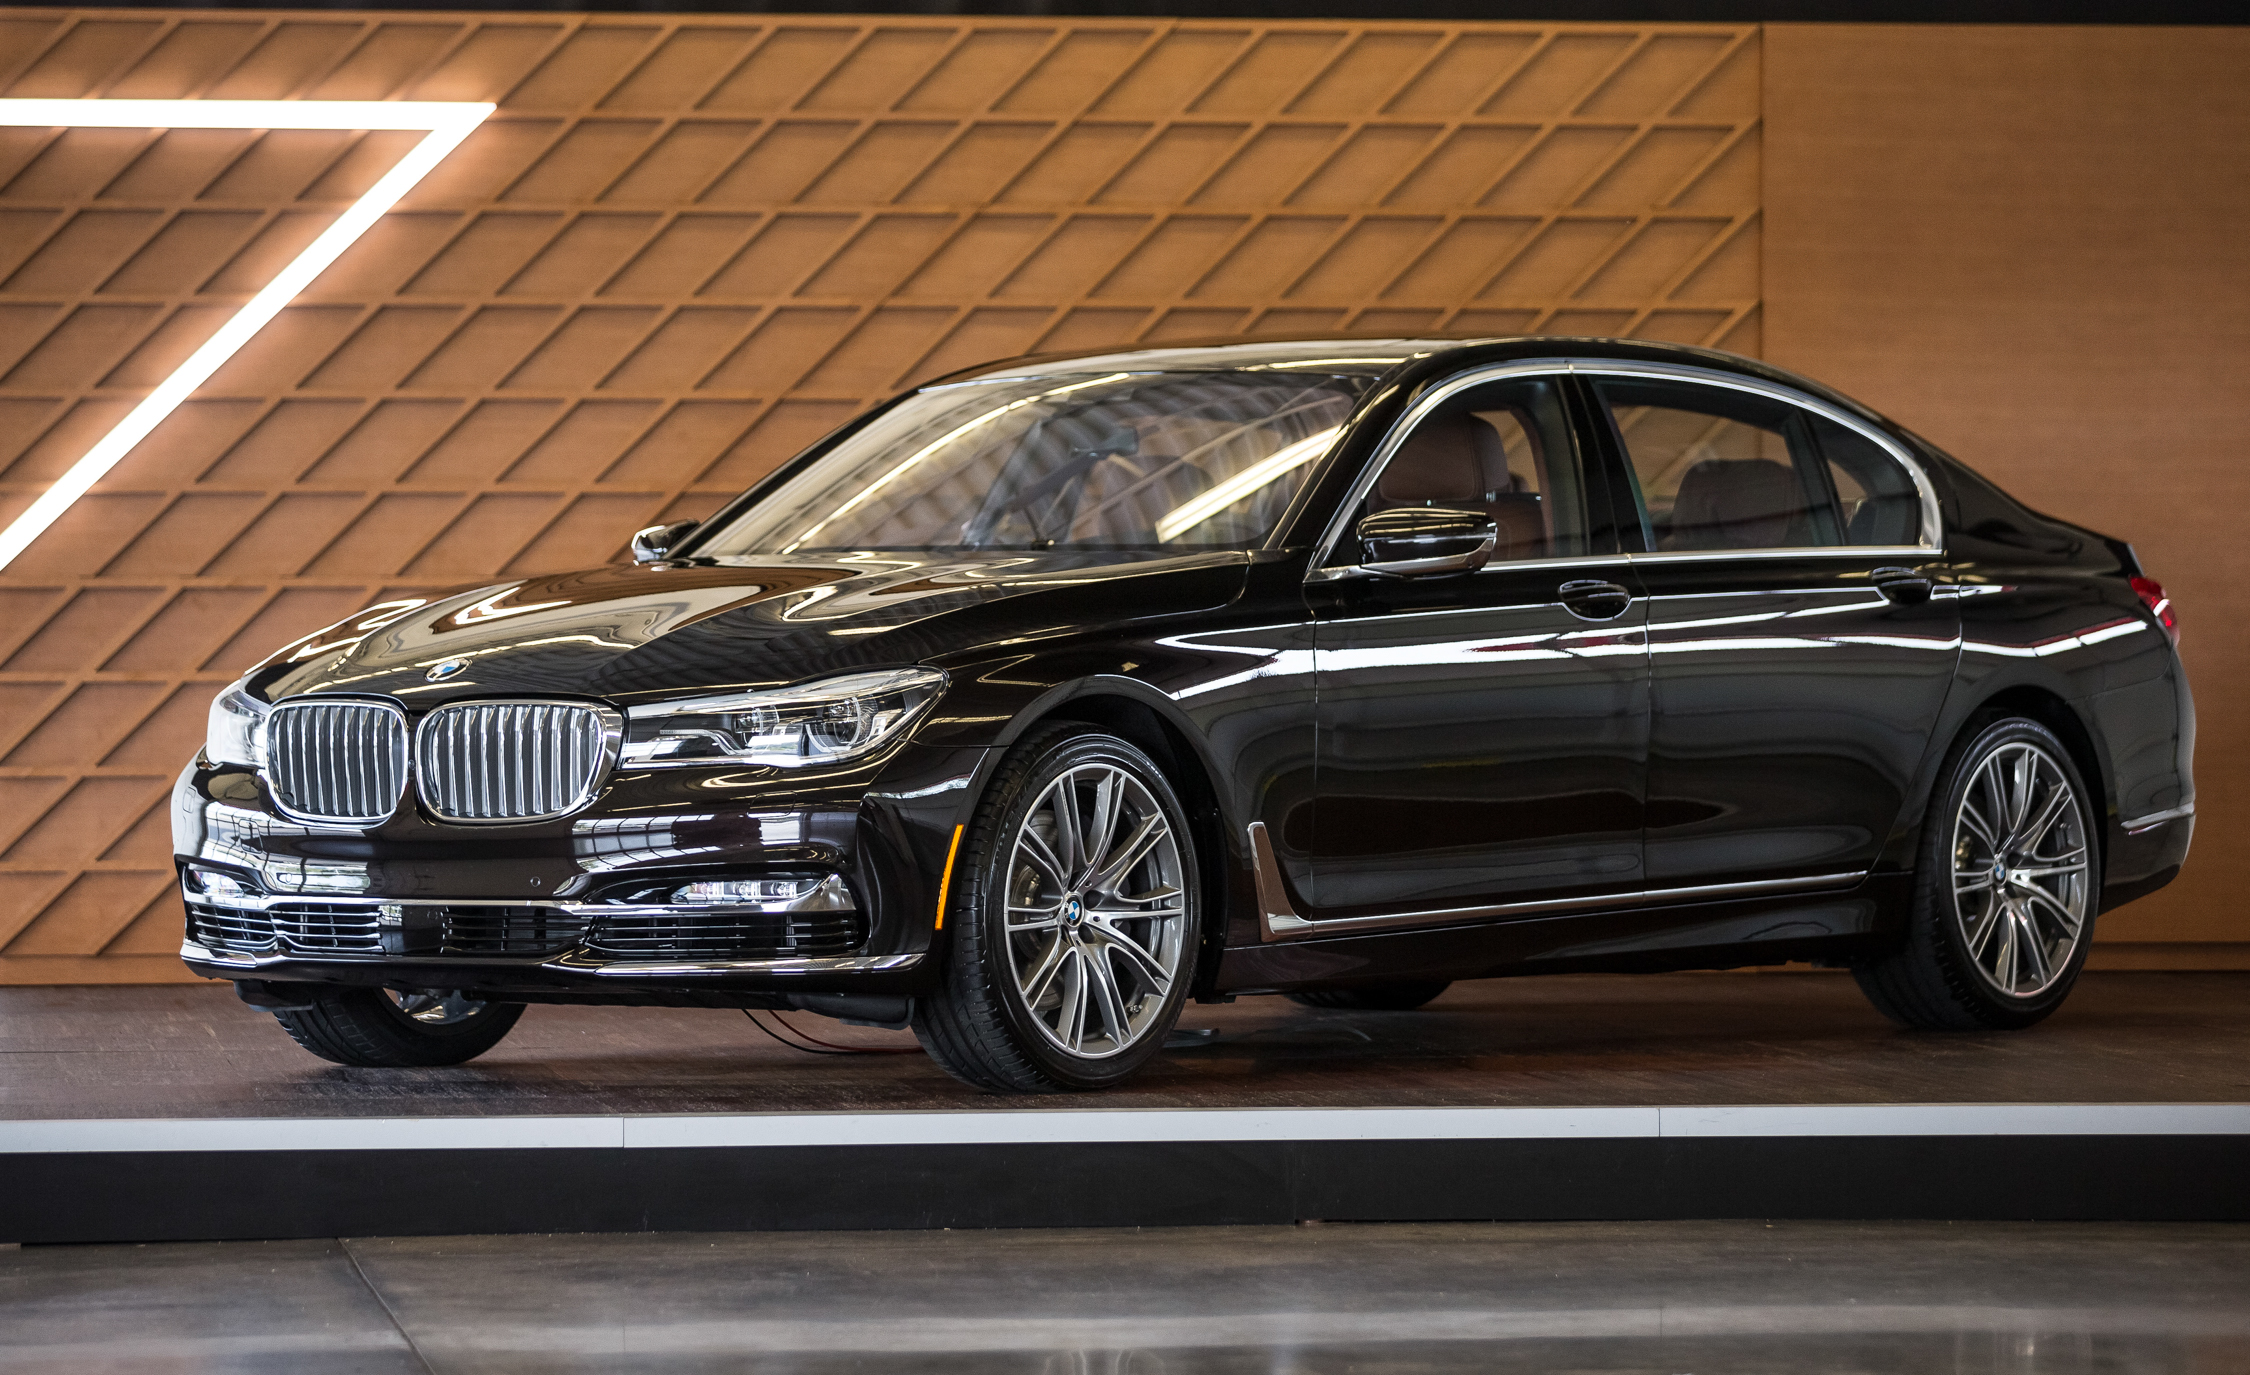 2016 BMW 7 Series Black